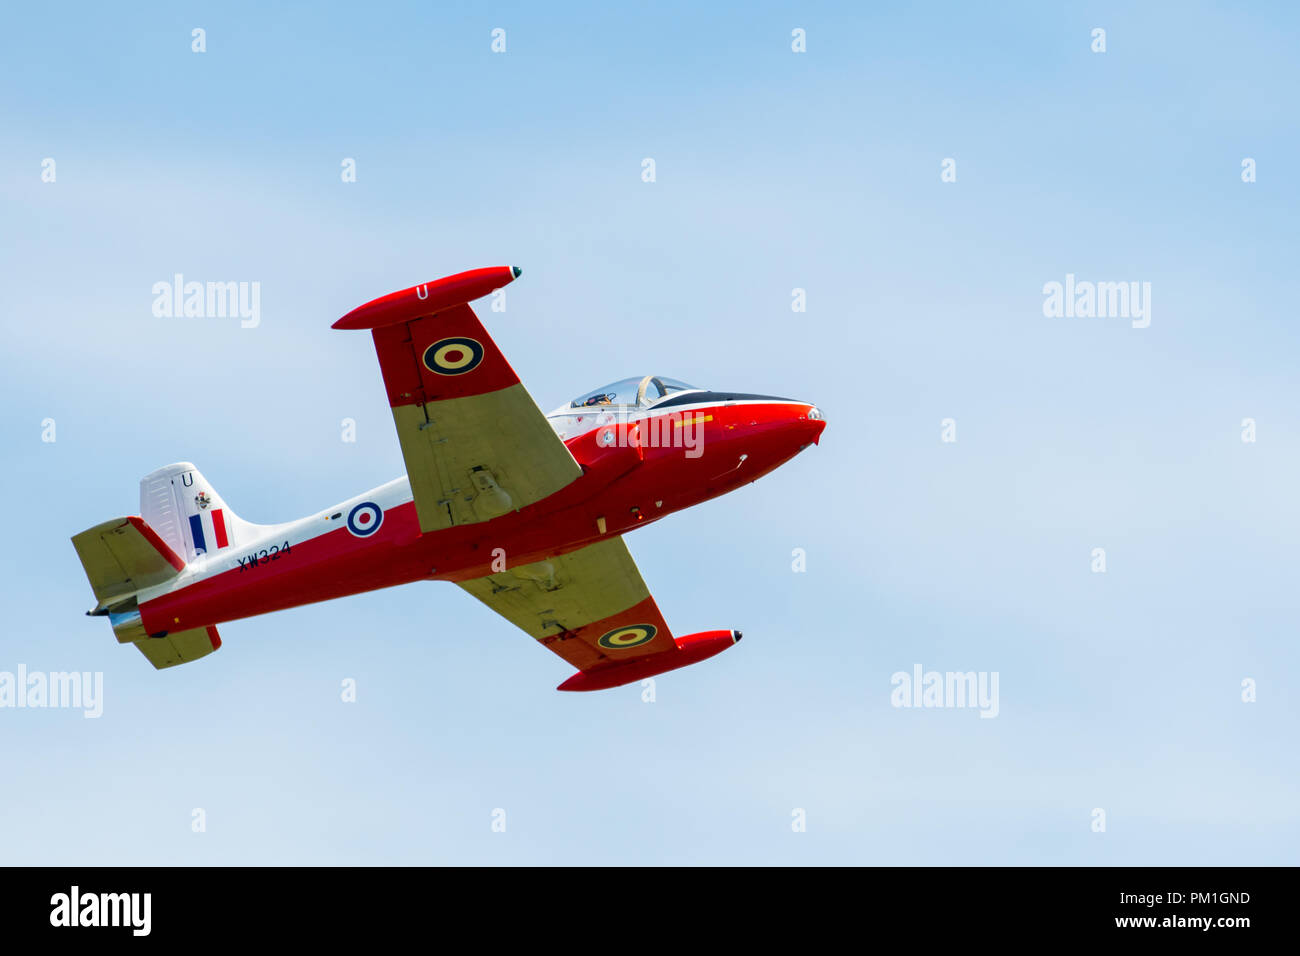 TELFORD, UK, JUNE 10, 2018 - A photograph documenting a 1950s era BAC Jet Provost training aircraft display at RAF Cosford Air Show for the RAF 100 Ce - Stock Image